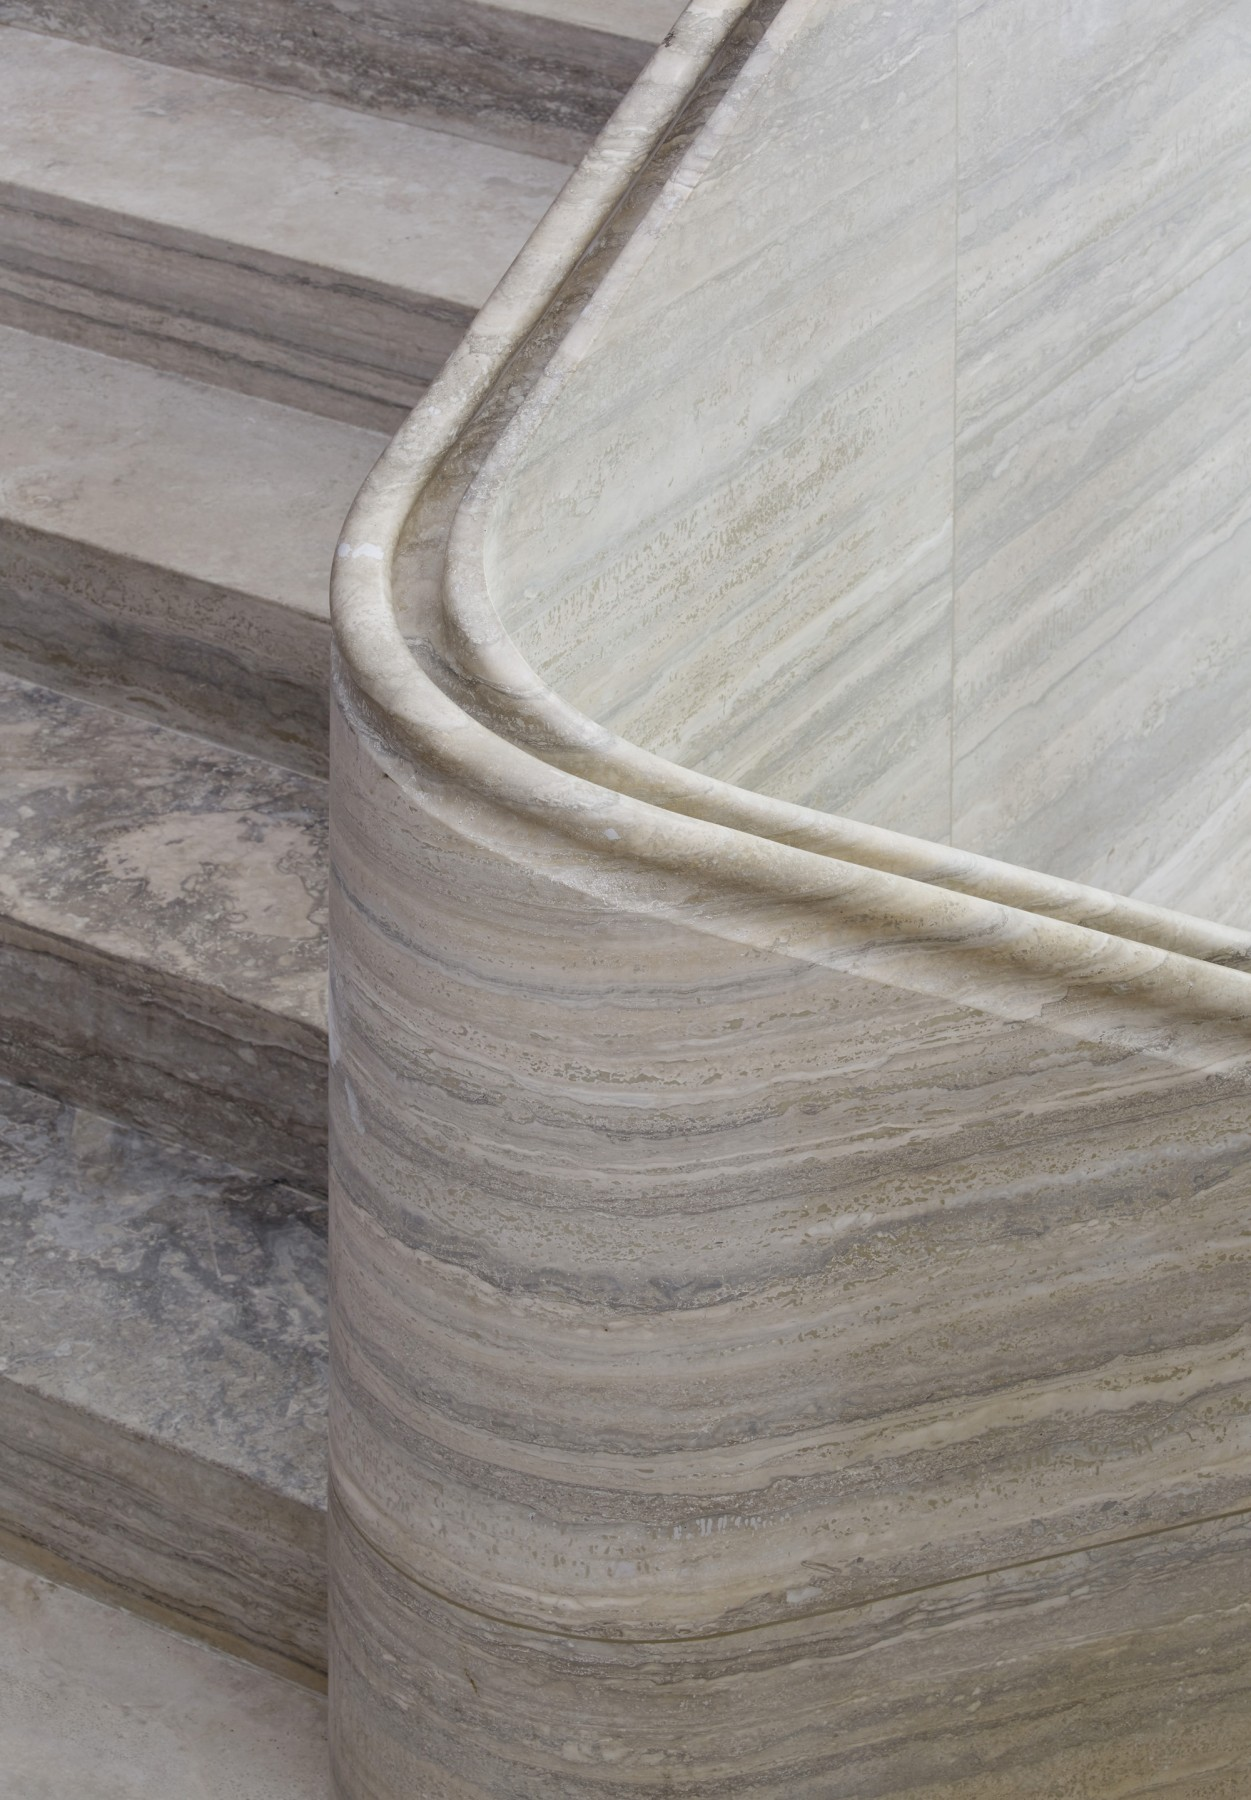 Jamie-Fobert-Architects- Travertine-stair-central-London-duplex-luxury-apartment- handrail-detail